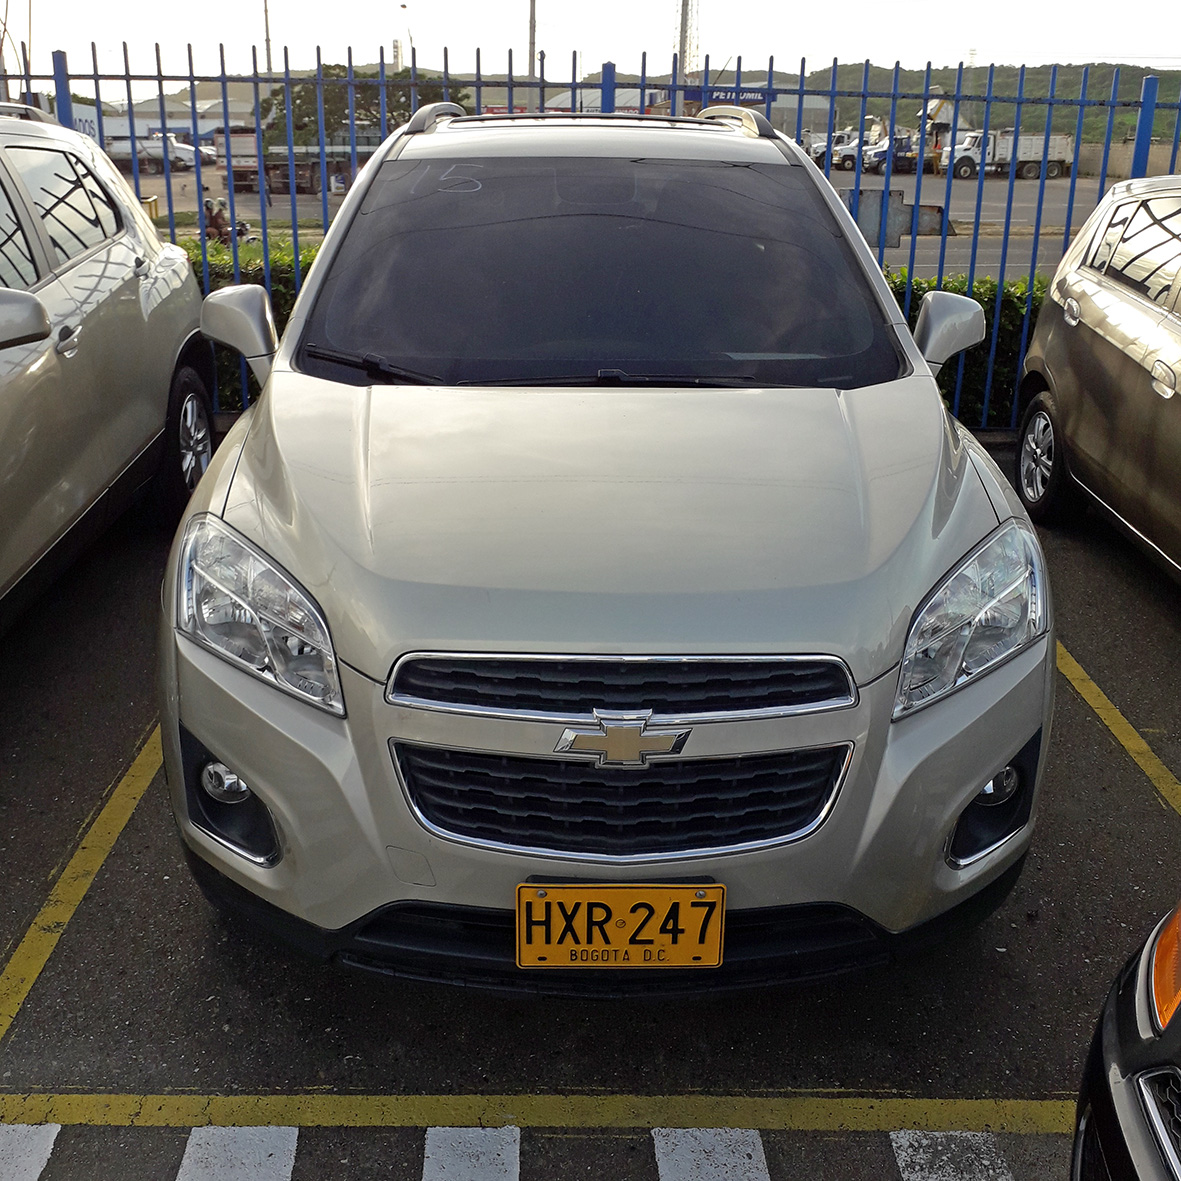 2015 CHEVROLET TRACKER LT WAGON 1.8